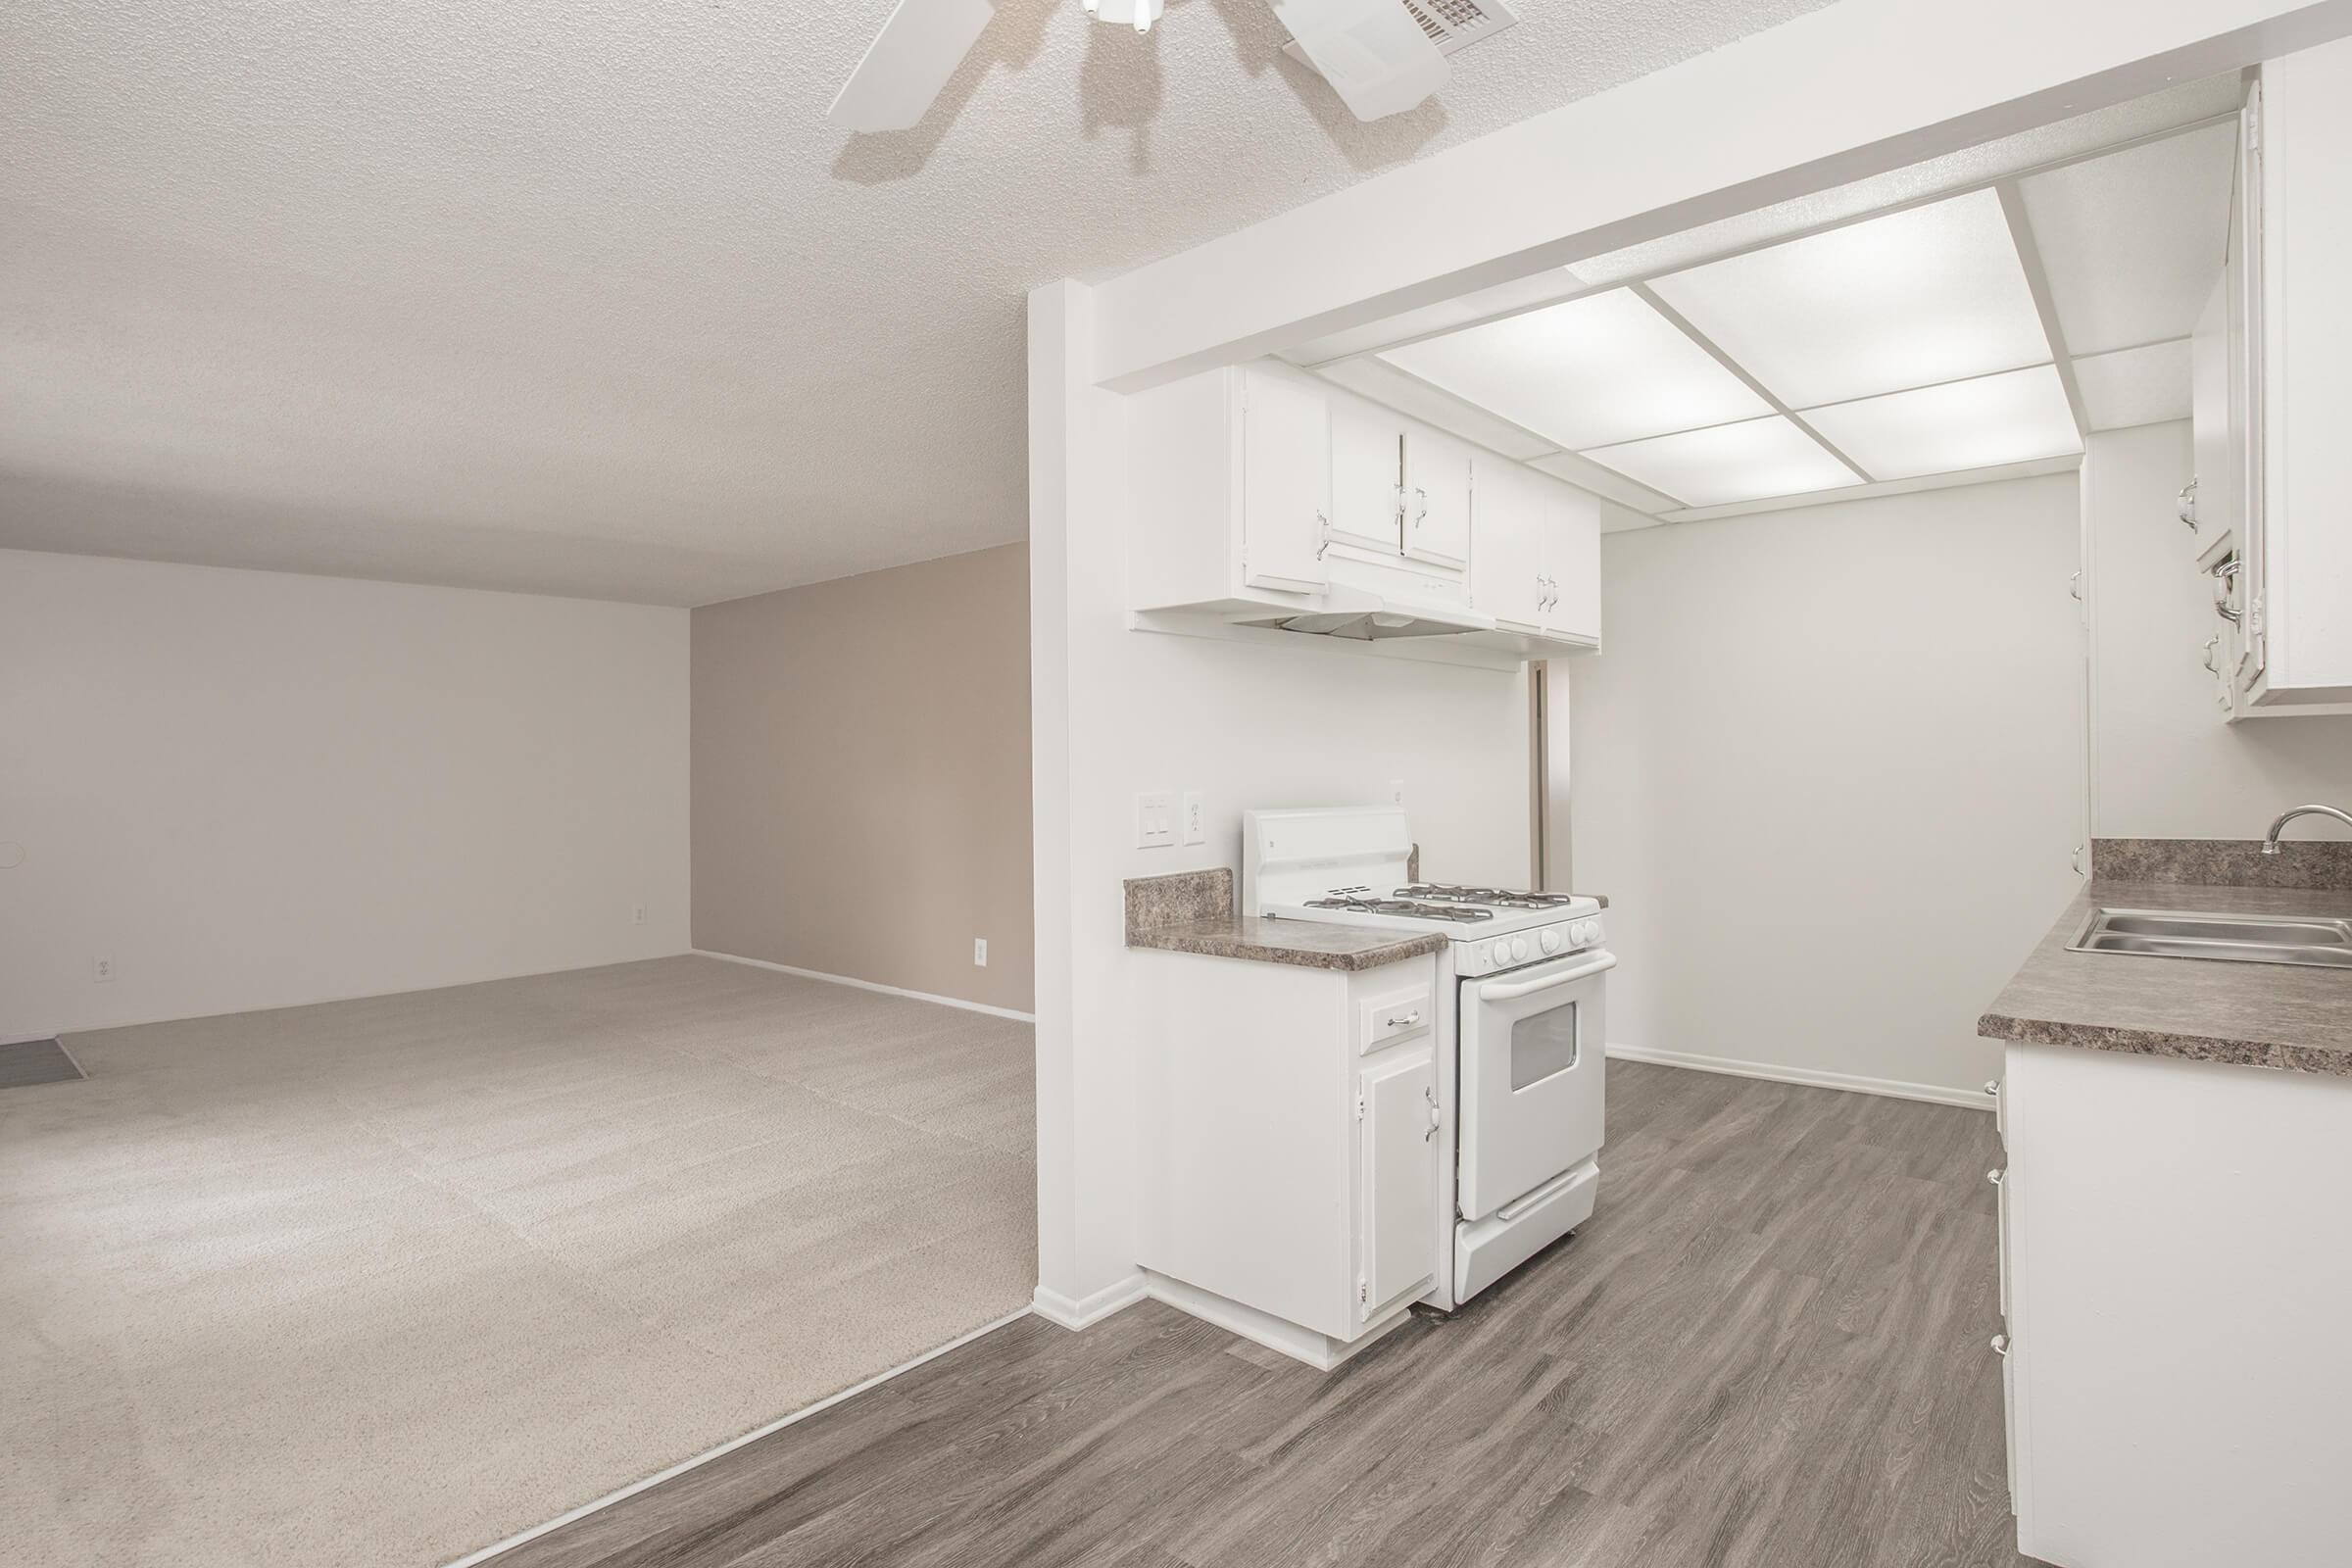 Kitchen with carpeted living room in background